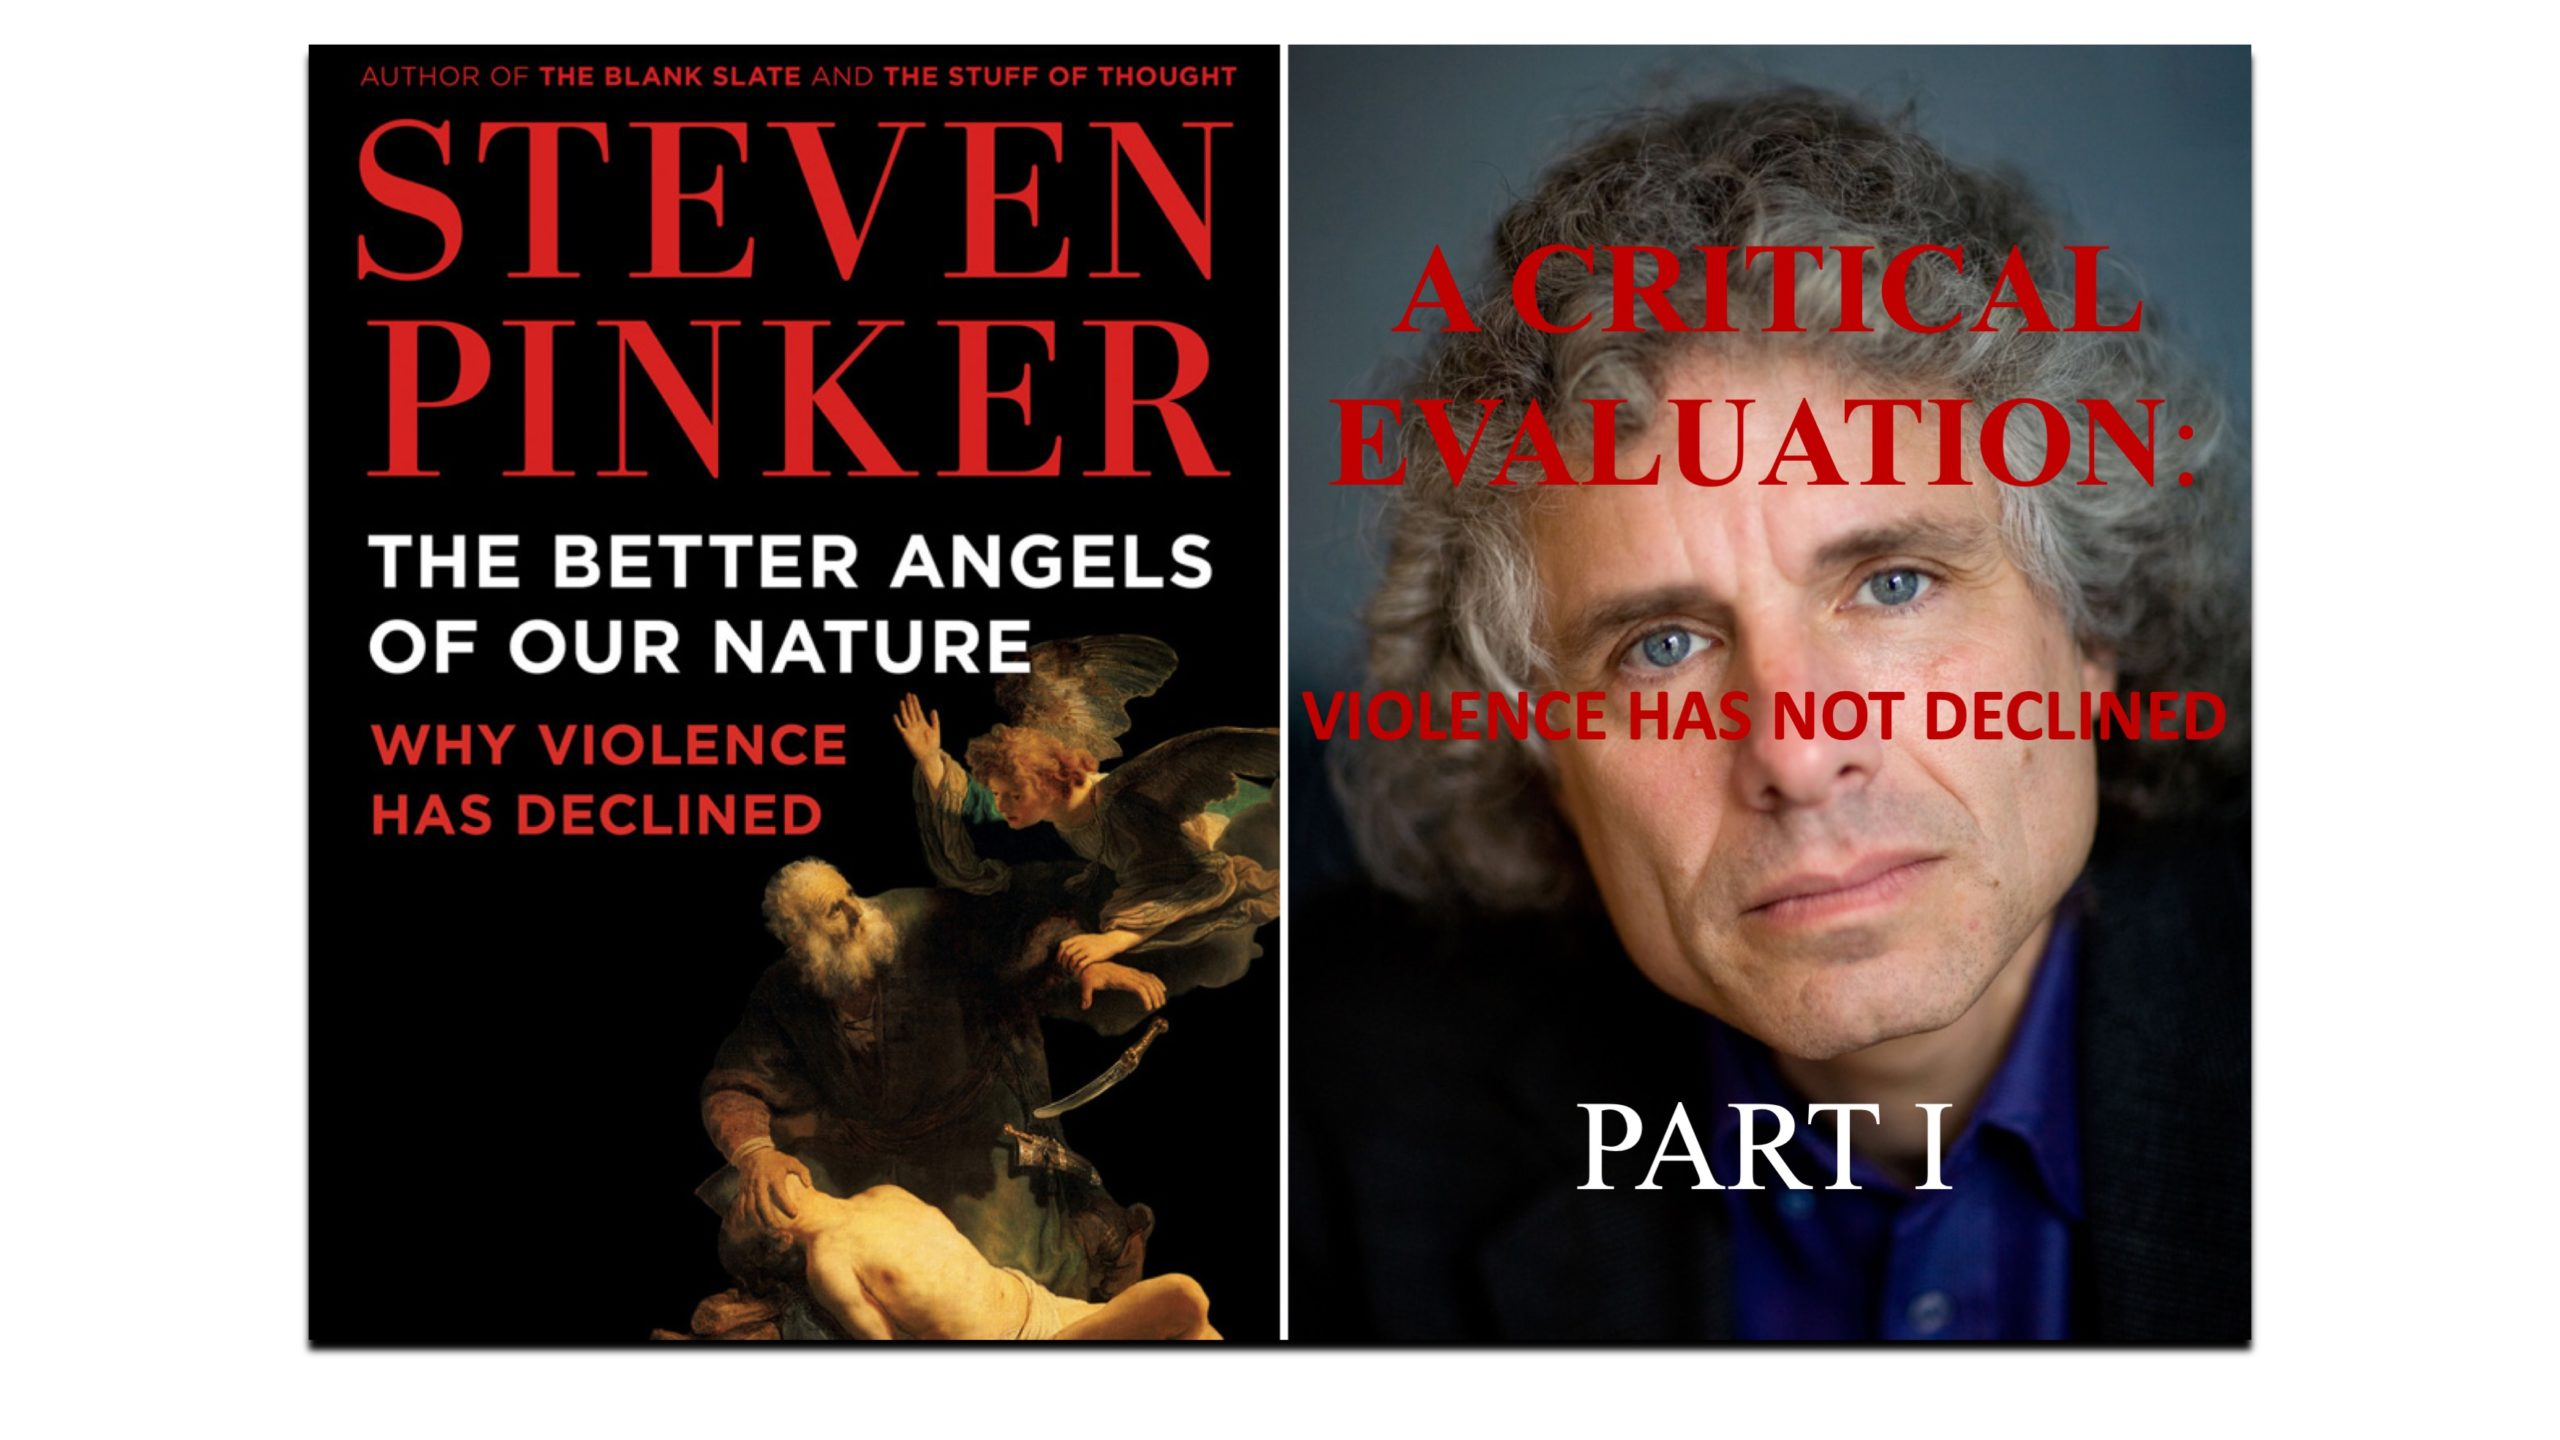 "A critical evaluation of ""The Better Angels of Our Nature"", a study by Steven Pinker. PART I"